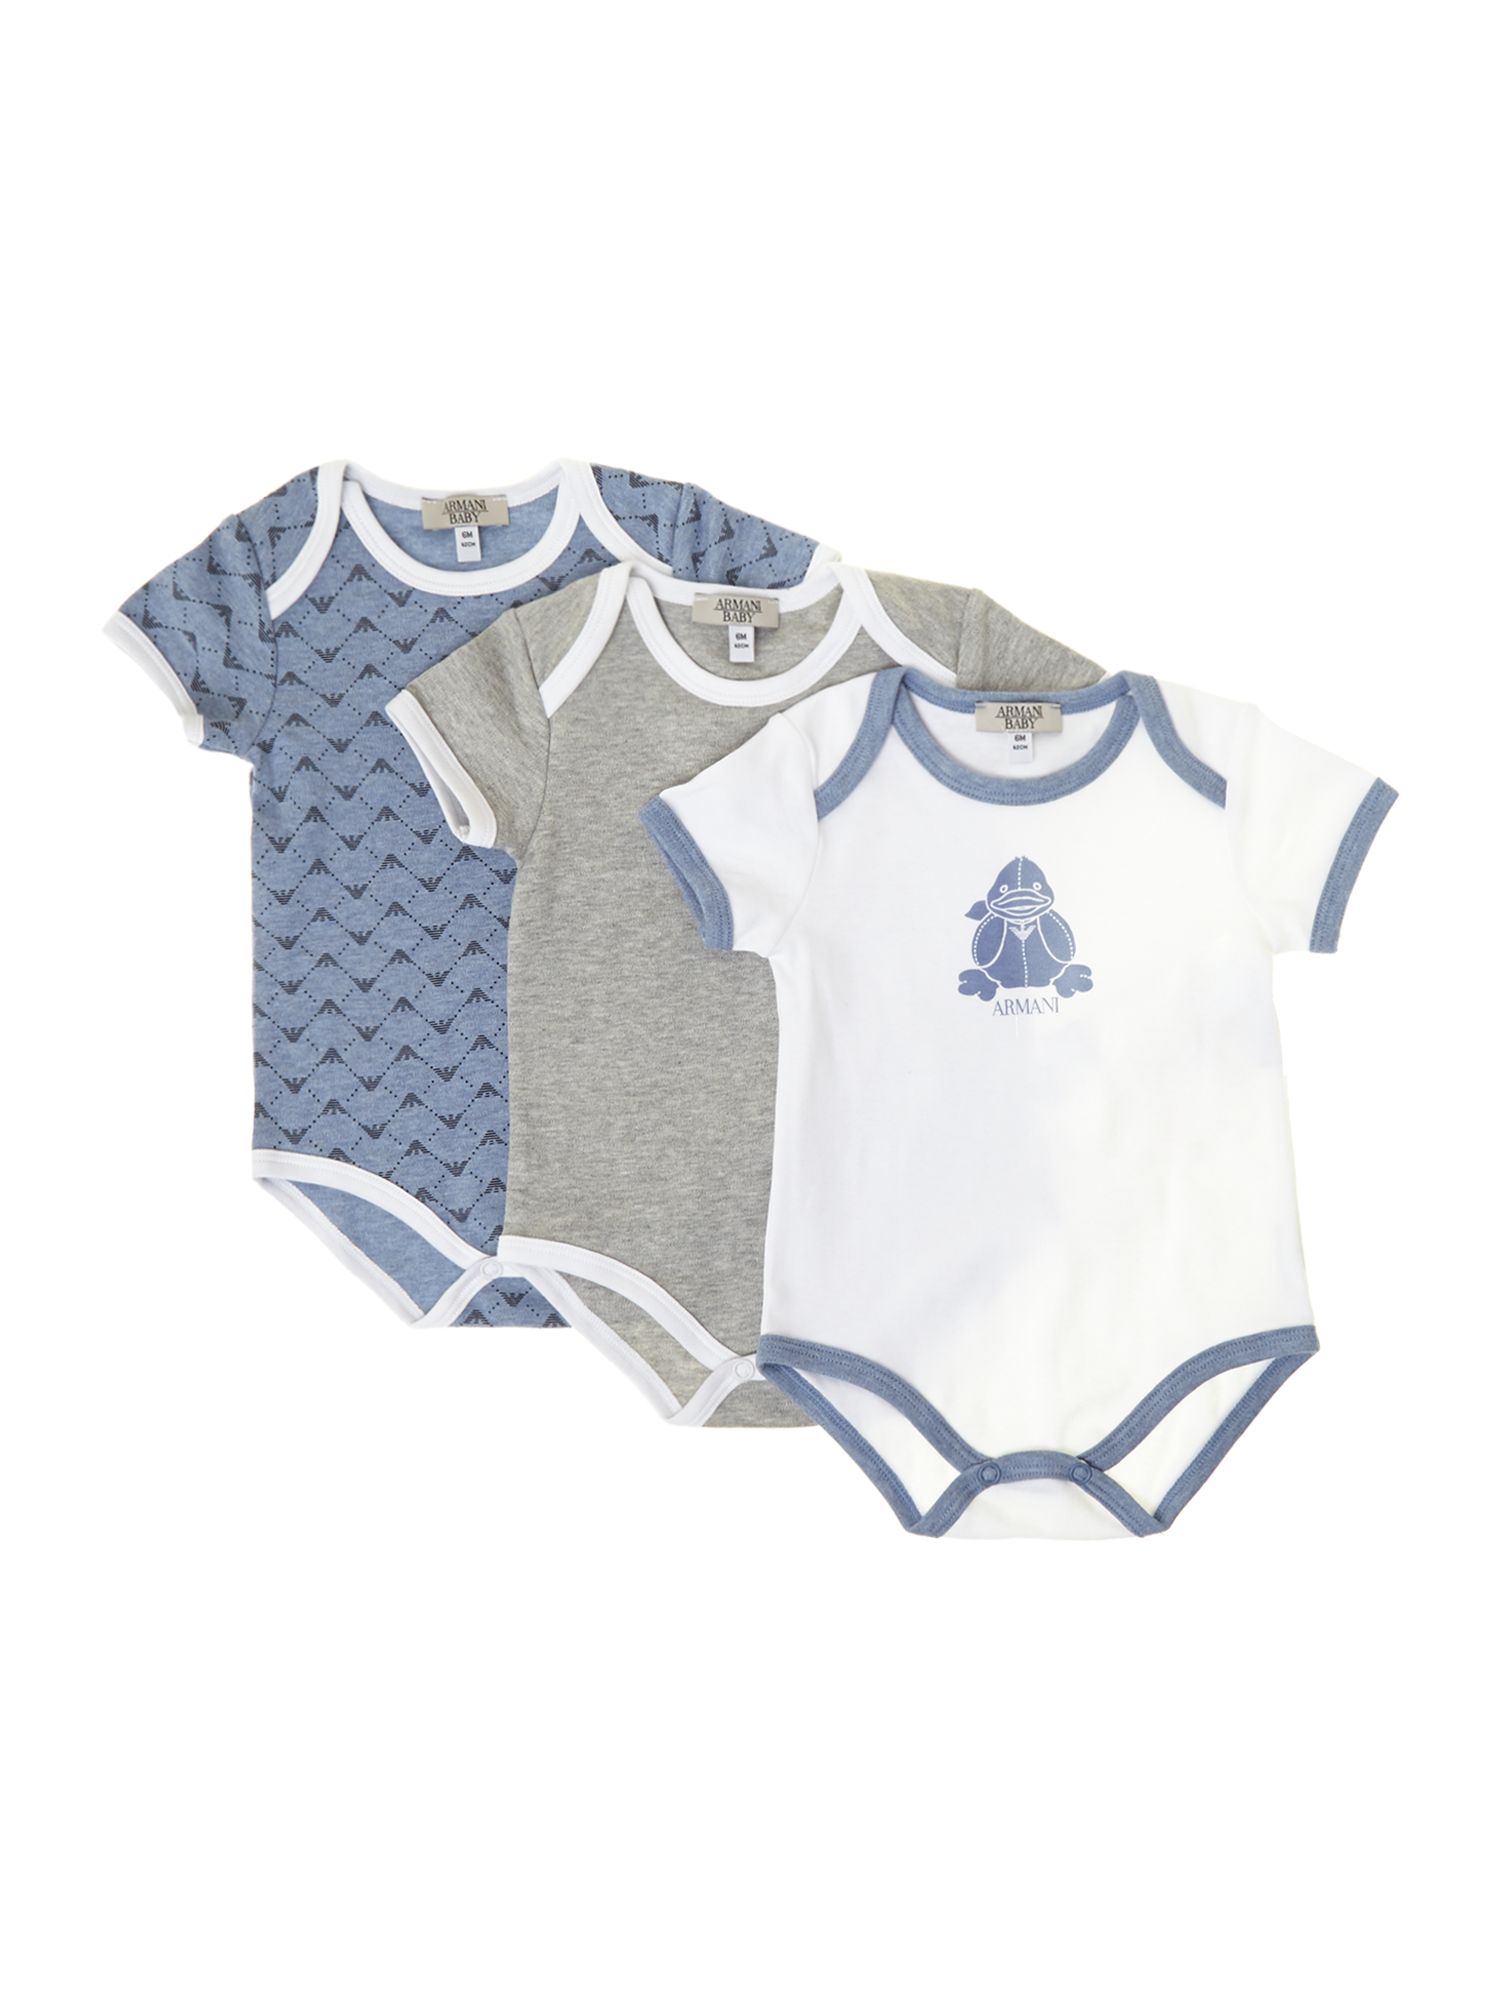 Baby`s 3 pack bodysuit gift box